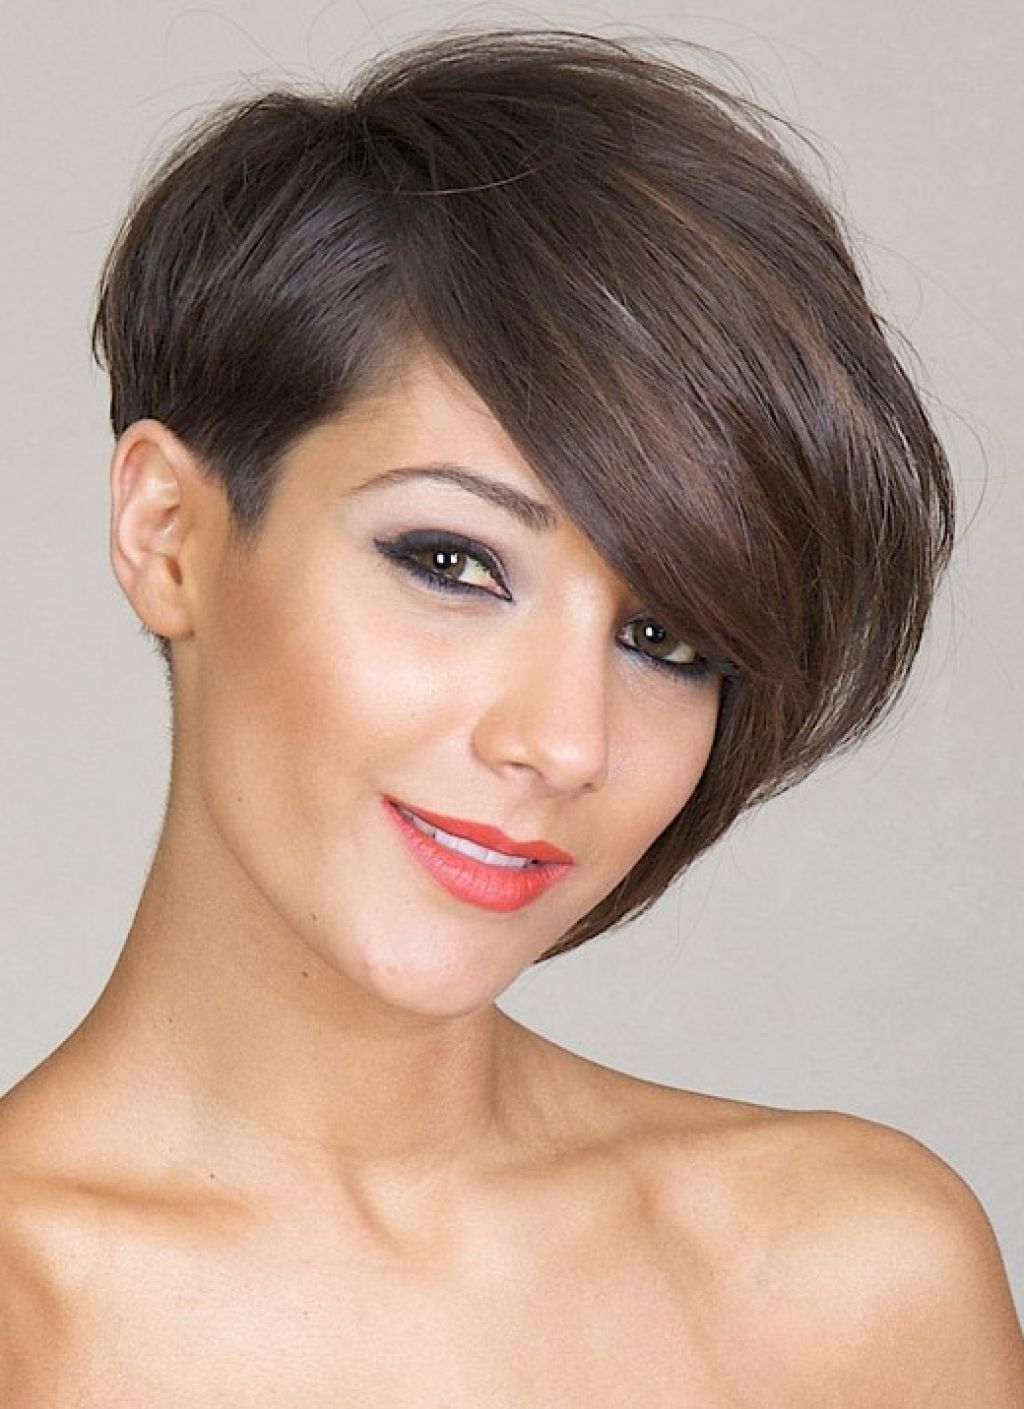 199 Asymmetrical Short Hair Pixie Haircut | Short ...